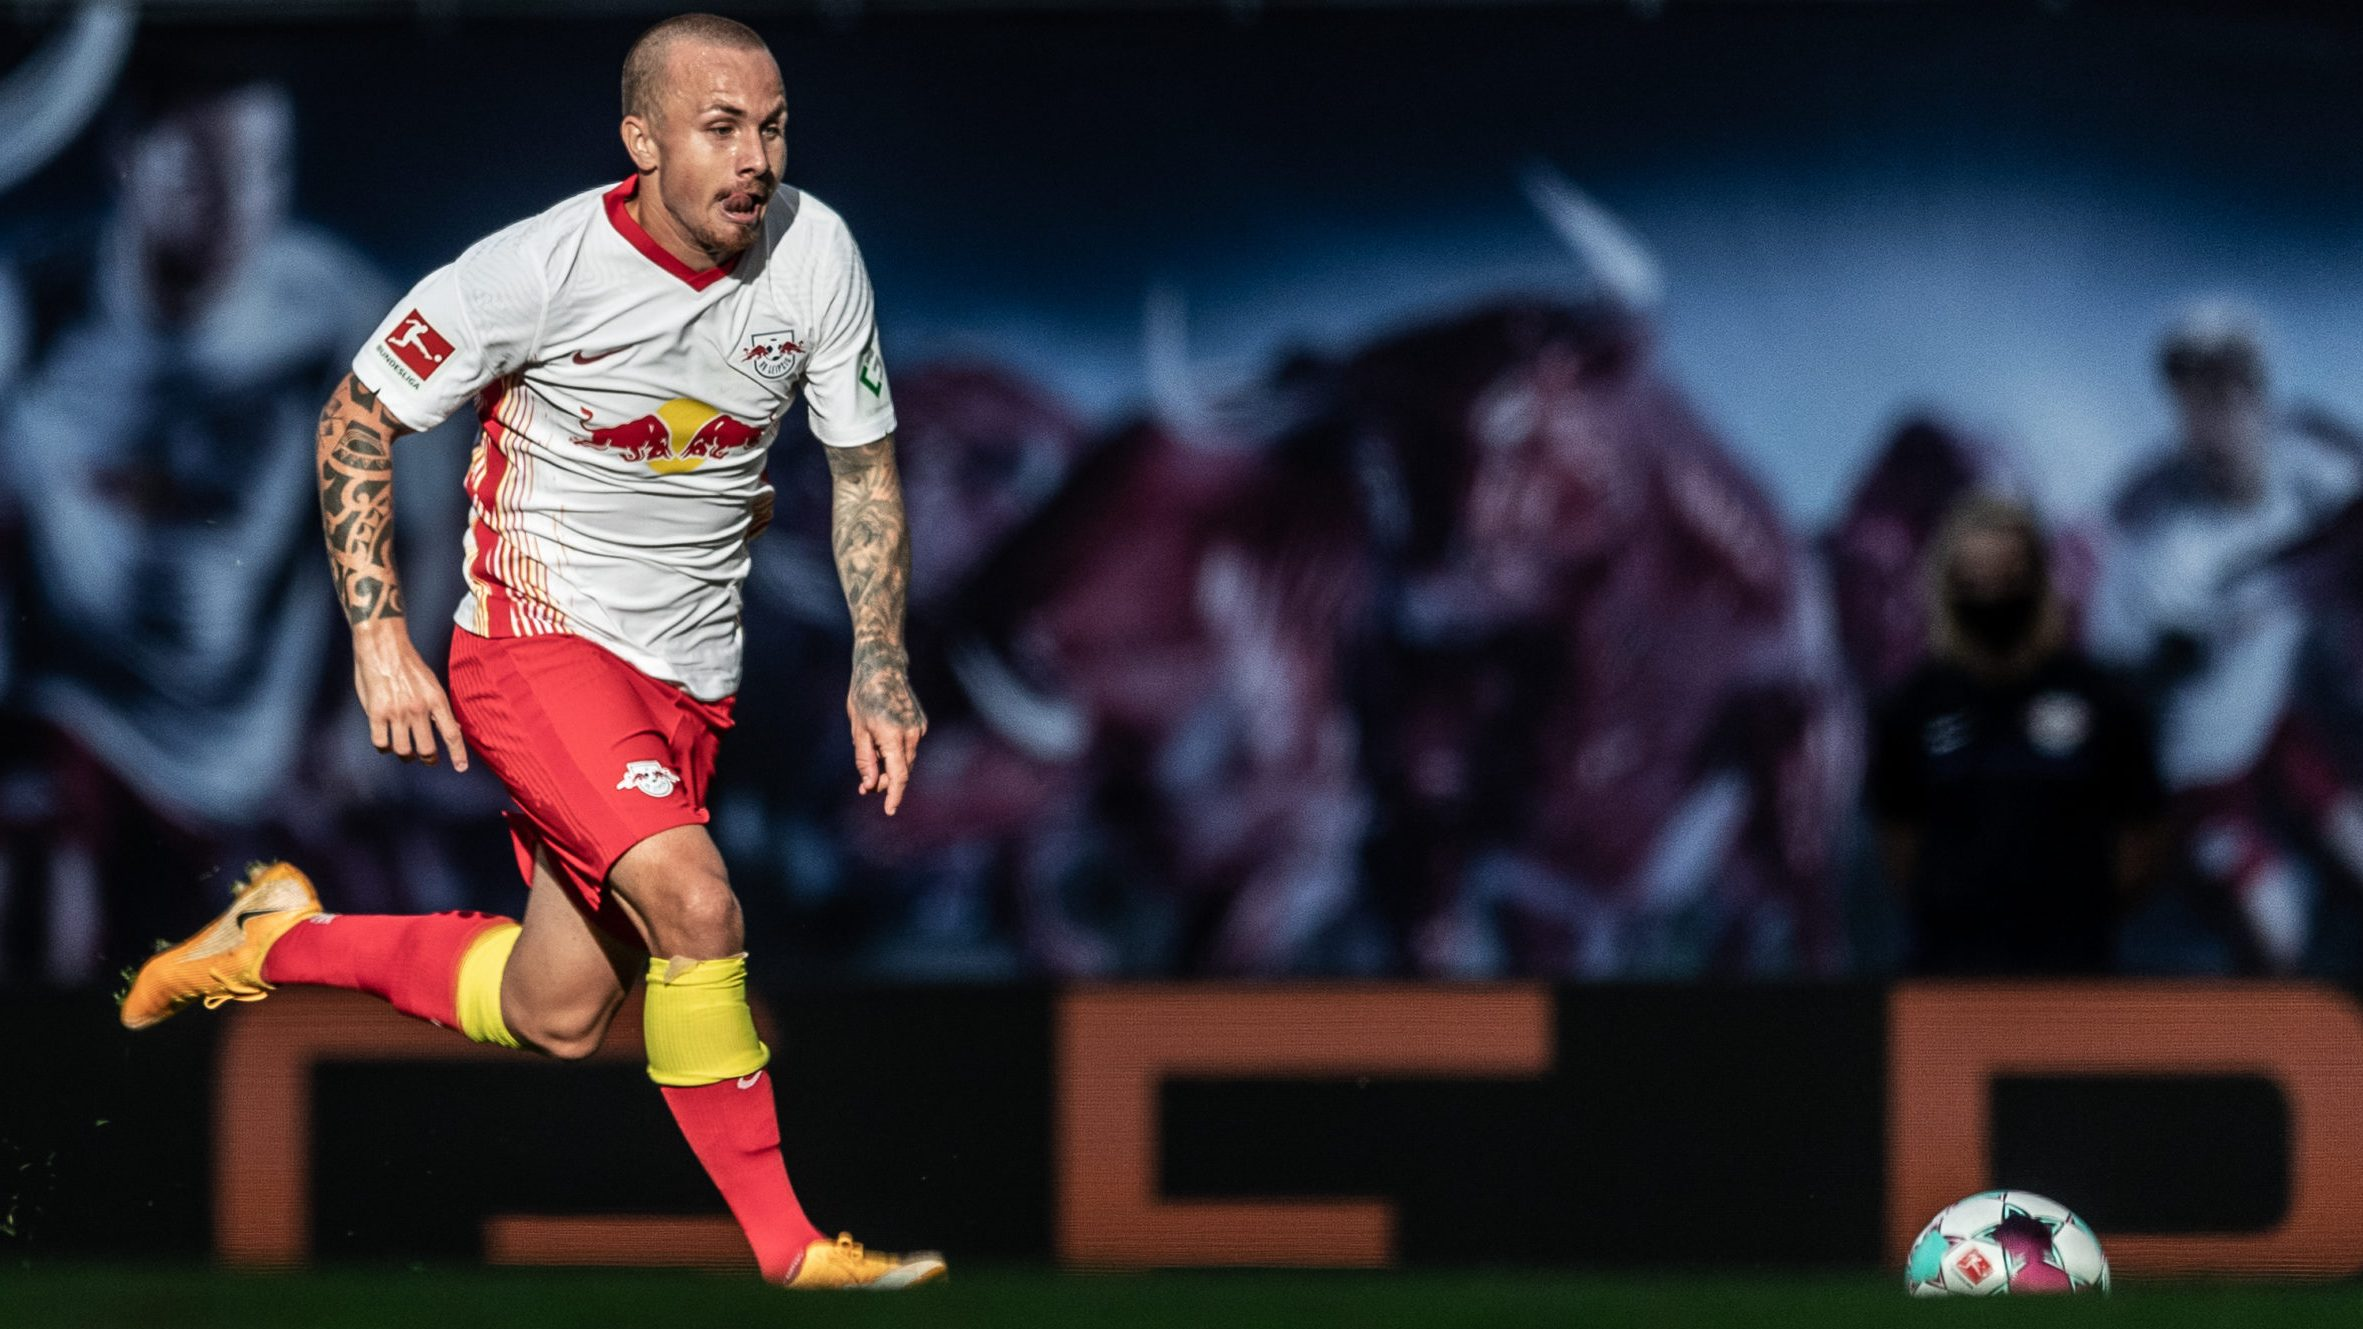 Bundesliga Angelino Who Is The Manchester City And Spain U21 Left Back On Loan At Rb Leipzig